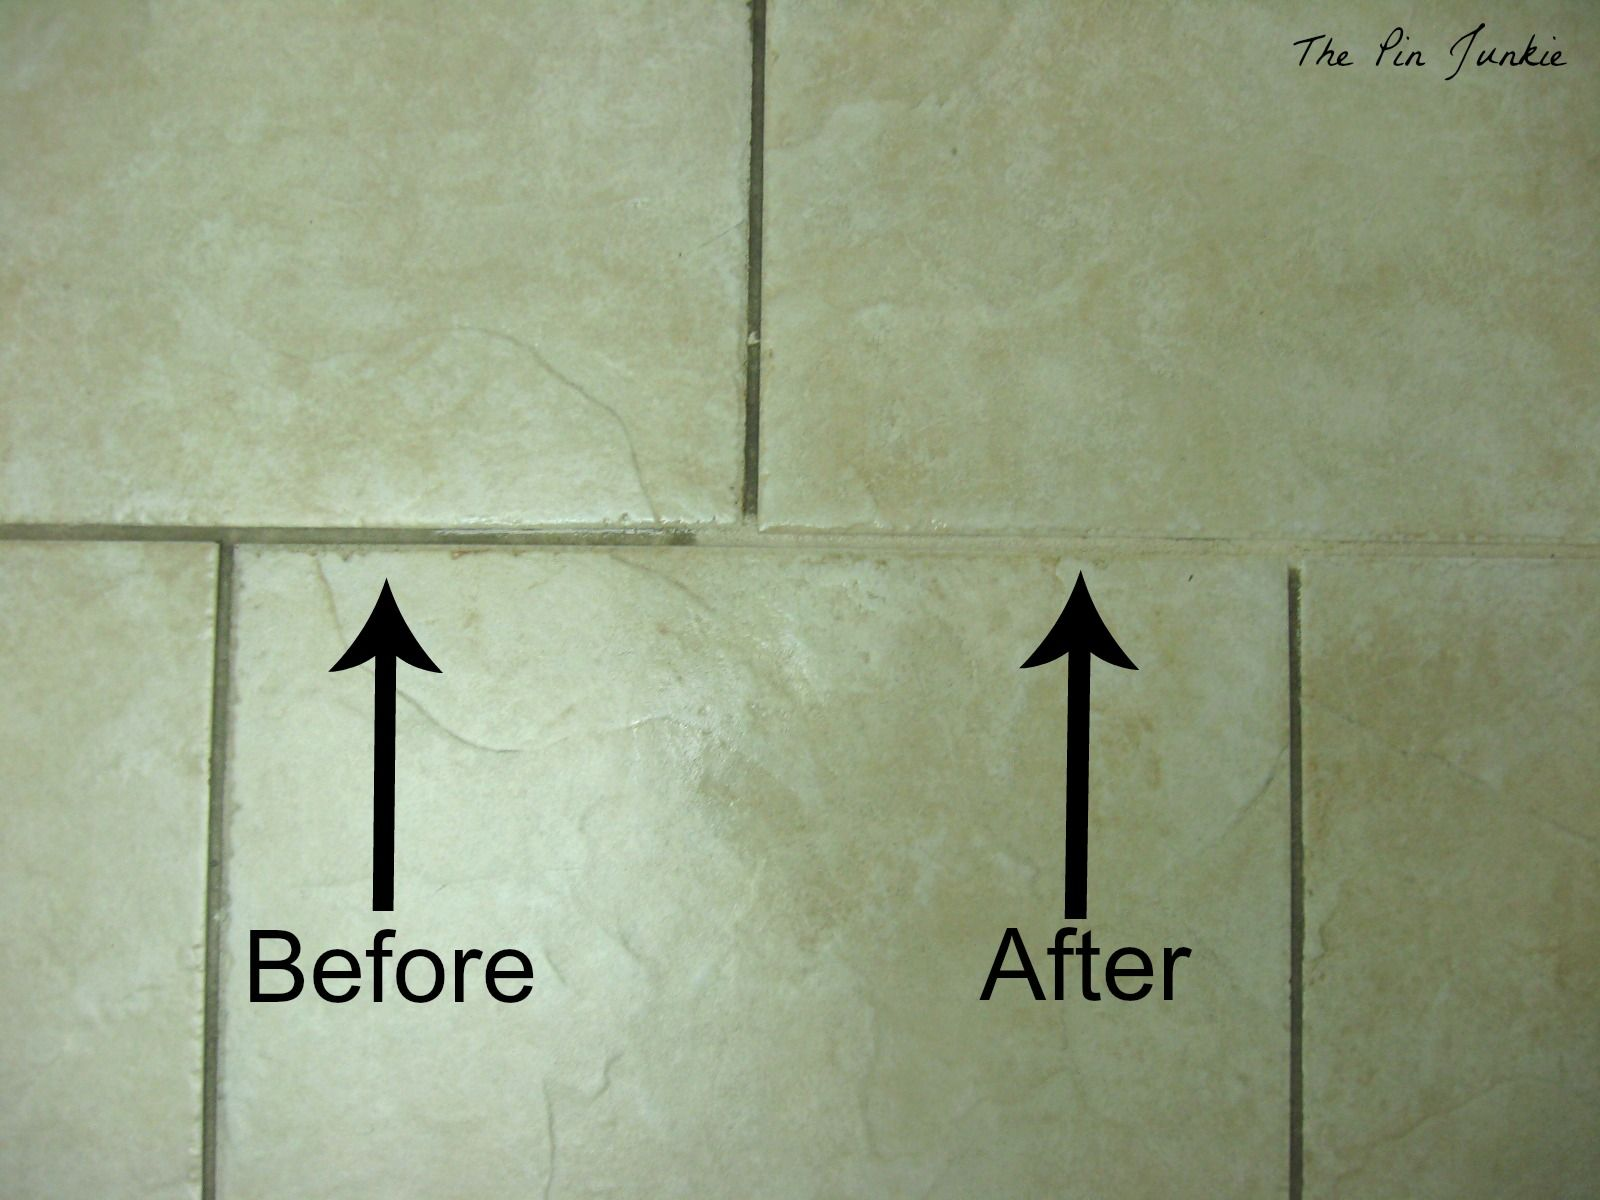 How to clean tile grout tile grout grout and tile grout cleaning how to clean tile grout dailygadgetfo Choice Image